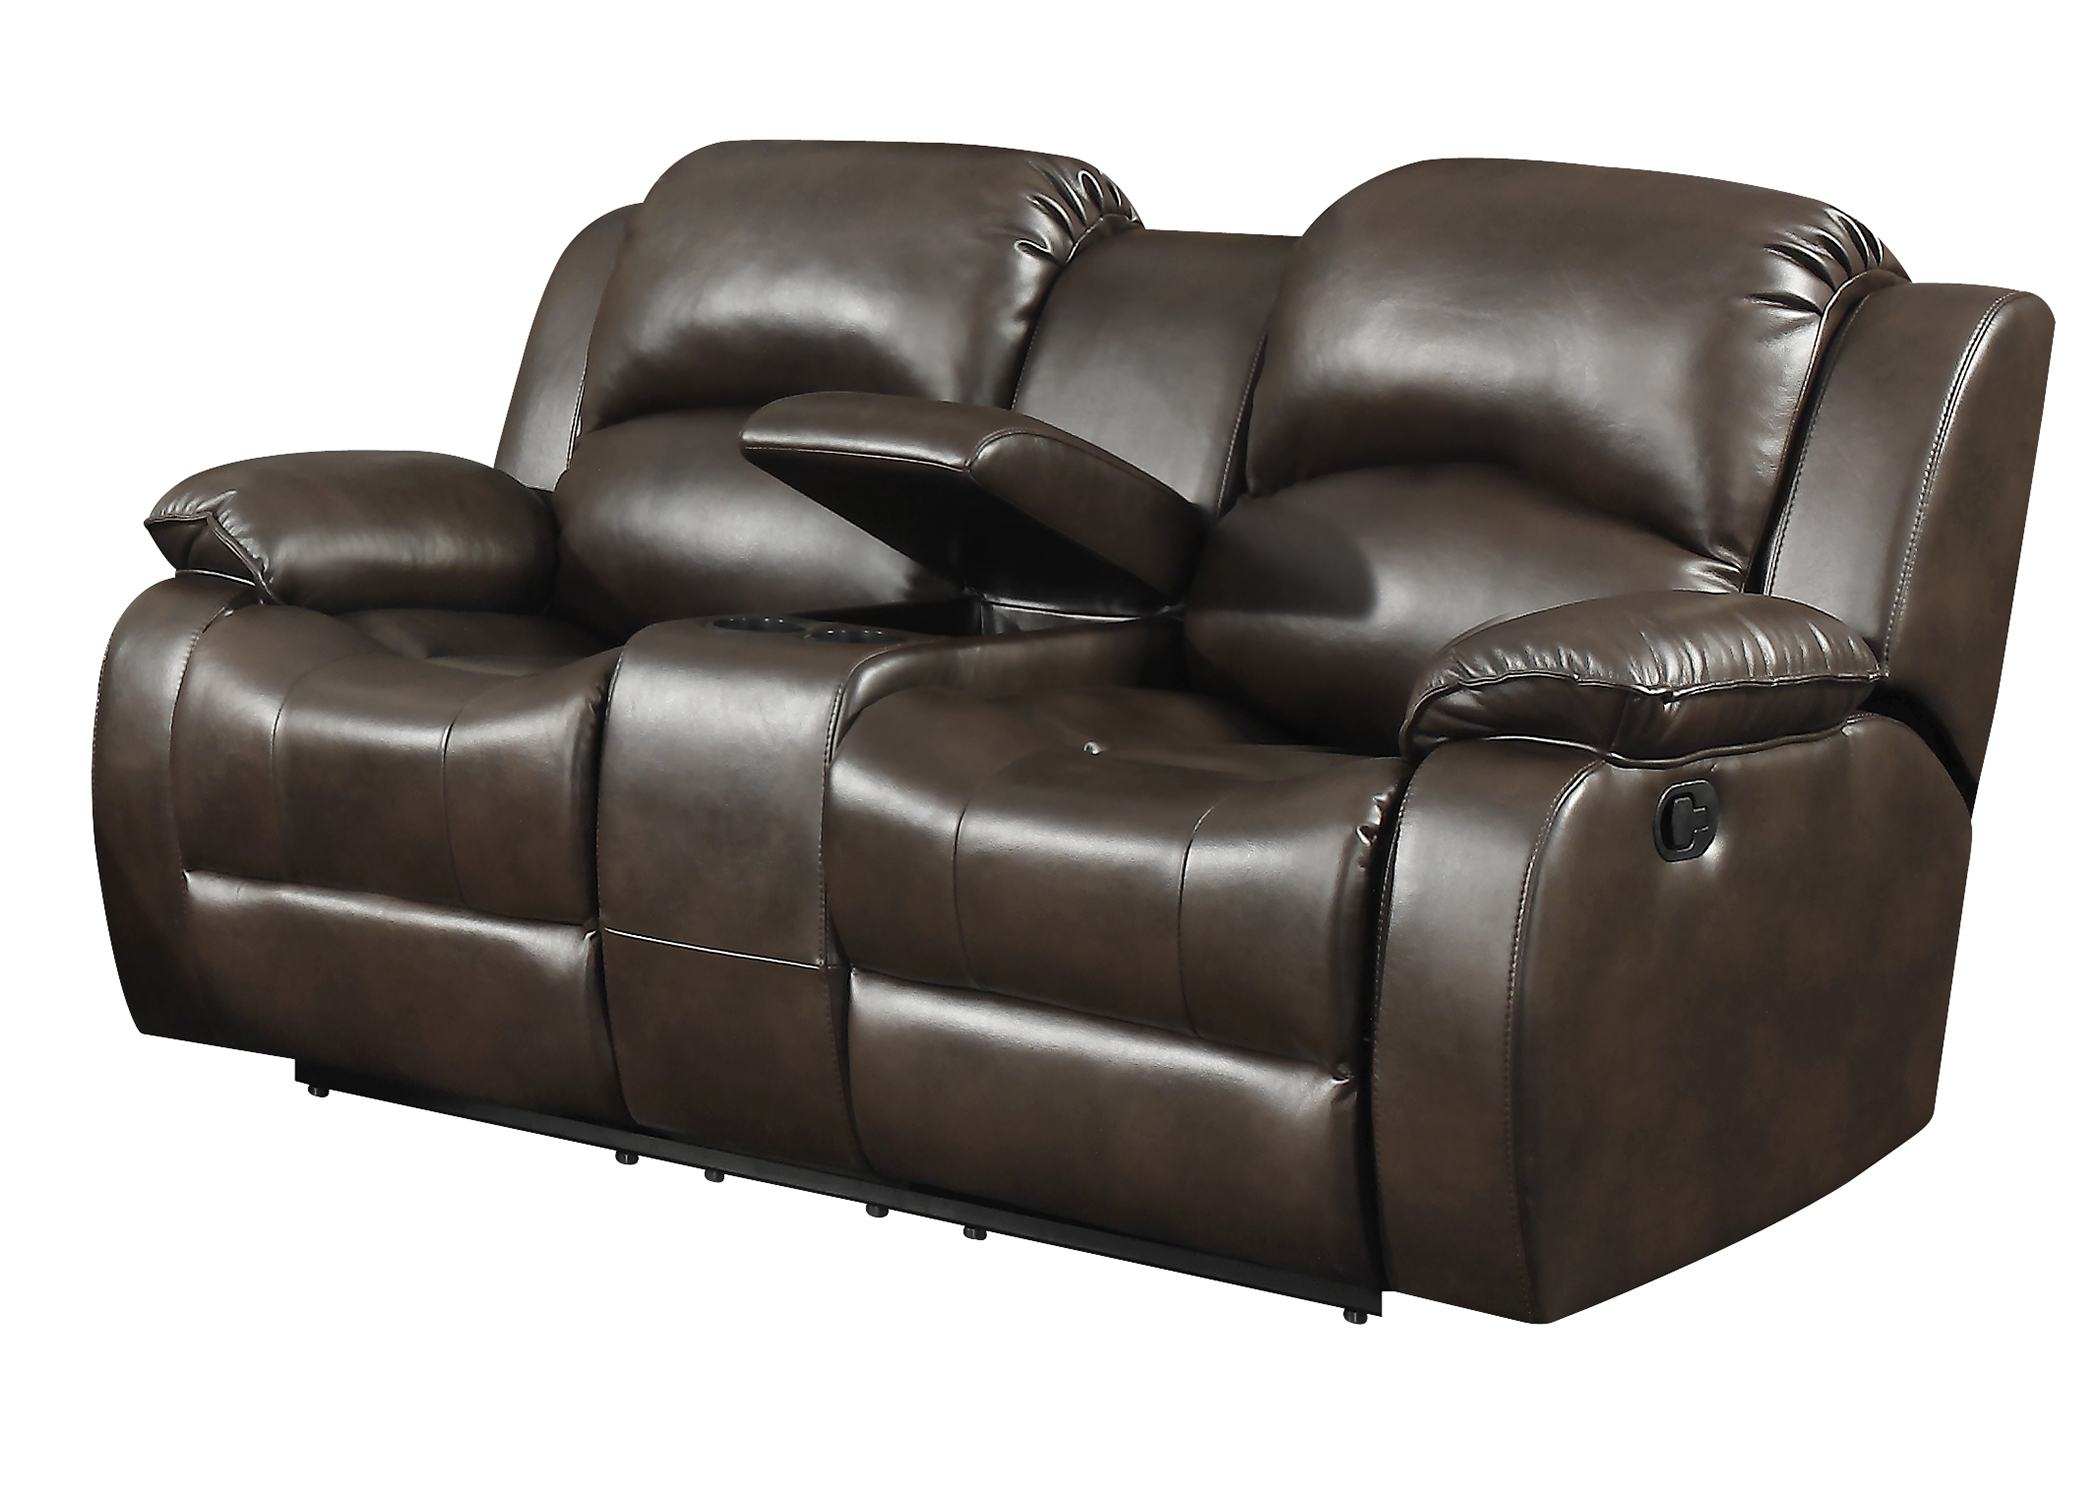 Dark Brown Leather Gel Reclining Loveseat with Storage Console and Cup Holders